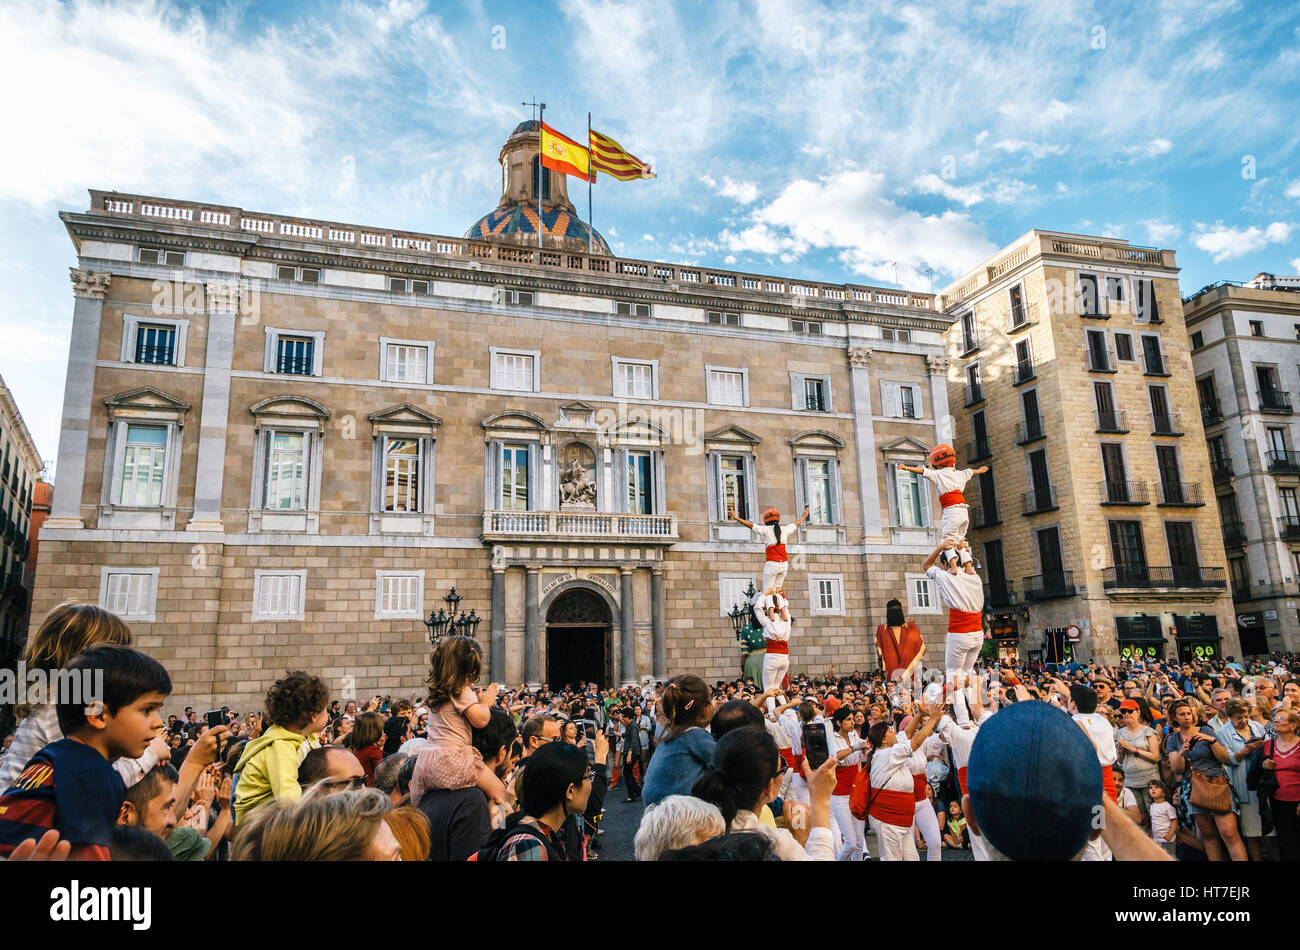 Barcelona, Spain - May 29, 2016: The Castellers de Barcelona of the Corpus Christi festival stand in front of the - Stock Image